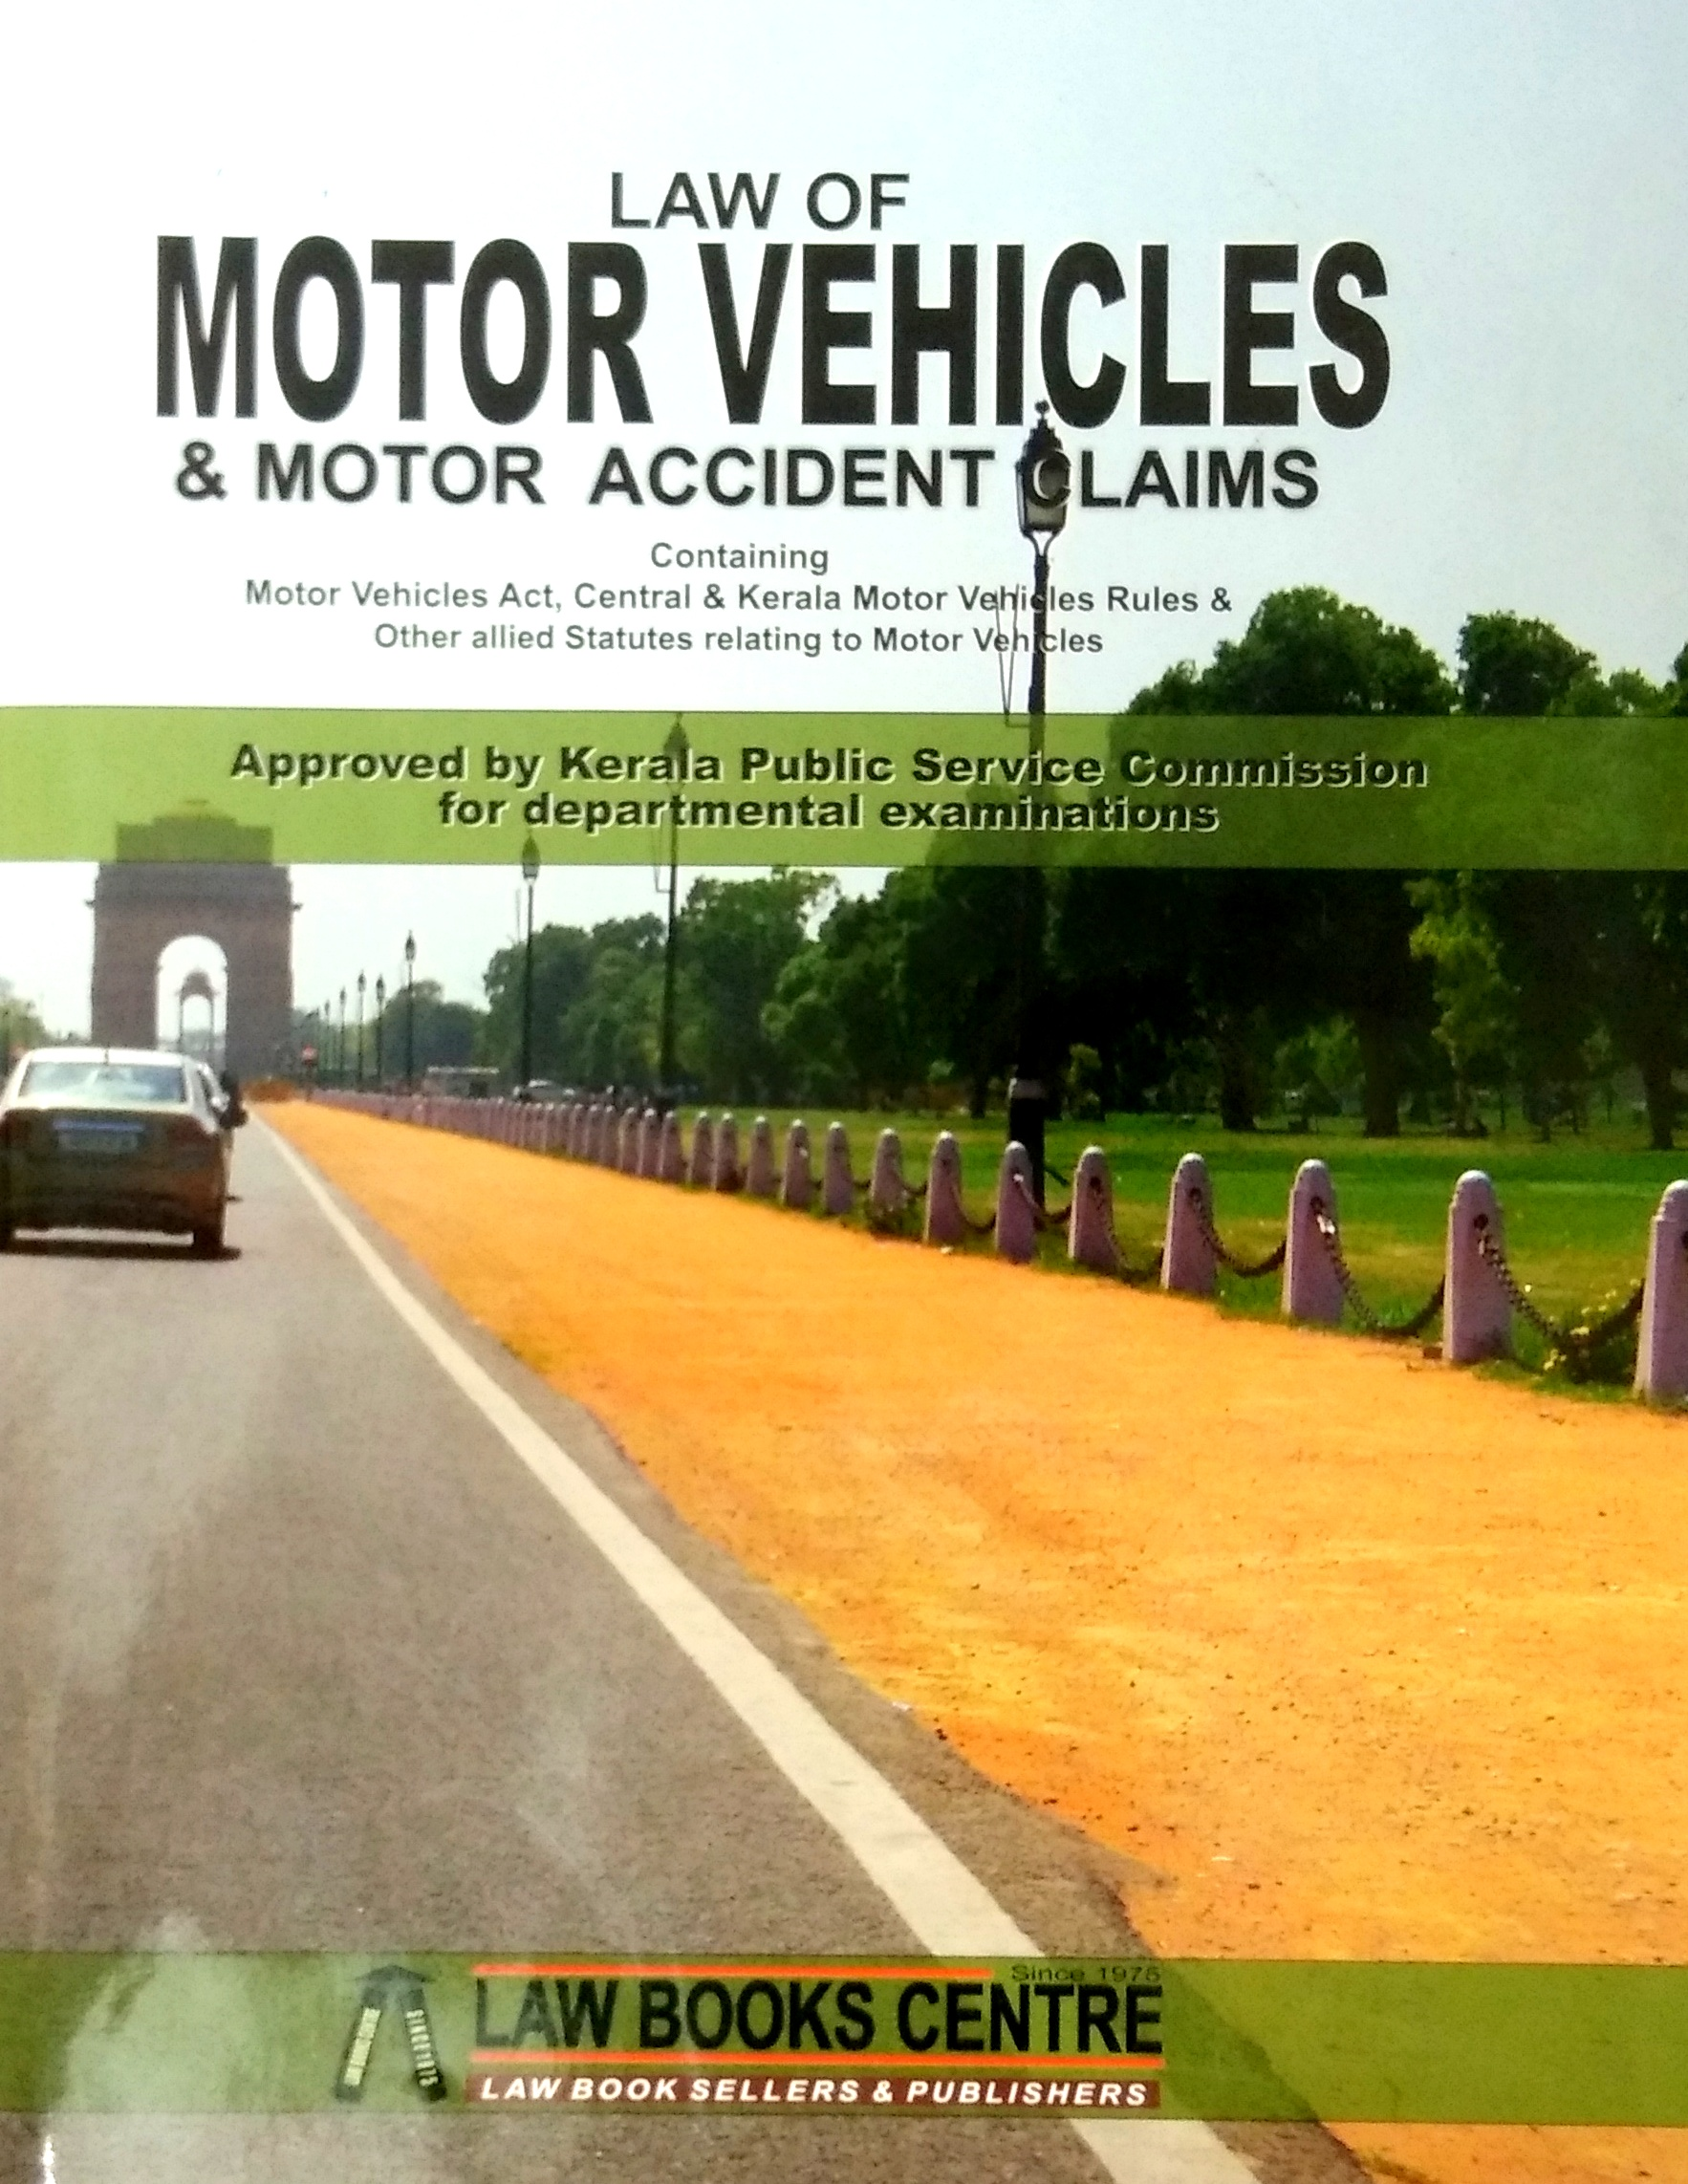 Law Of Motor Vehicles & Motor Accident Claims (7th Edn. 2019)